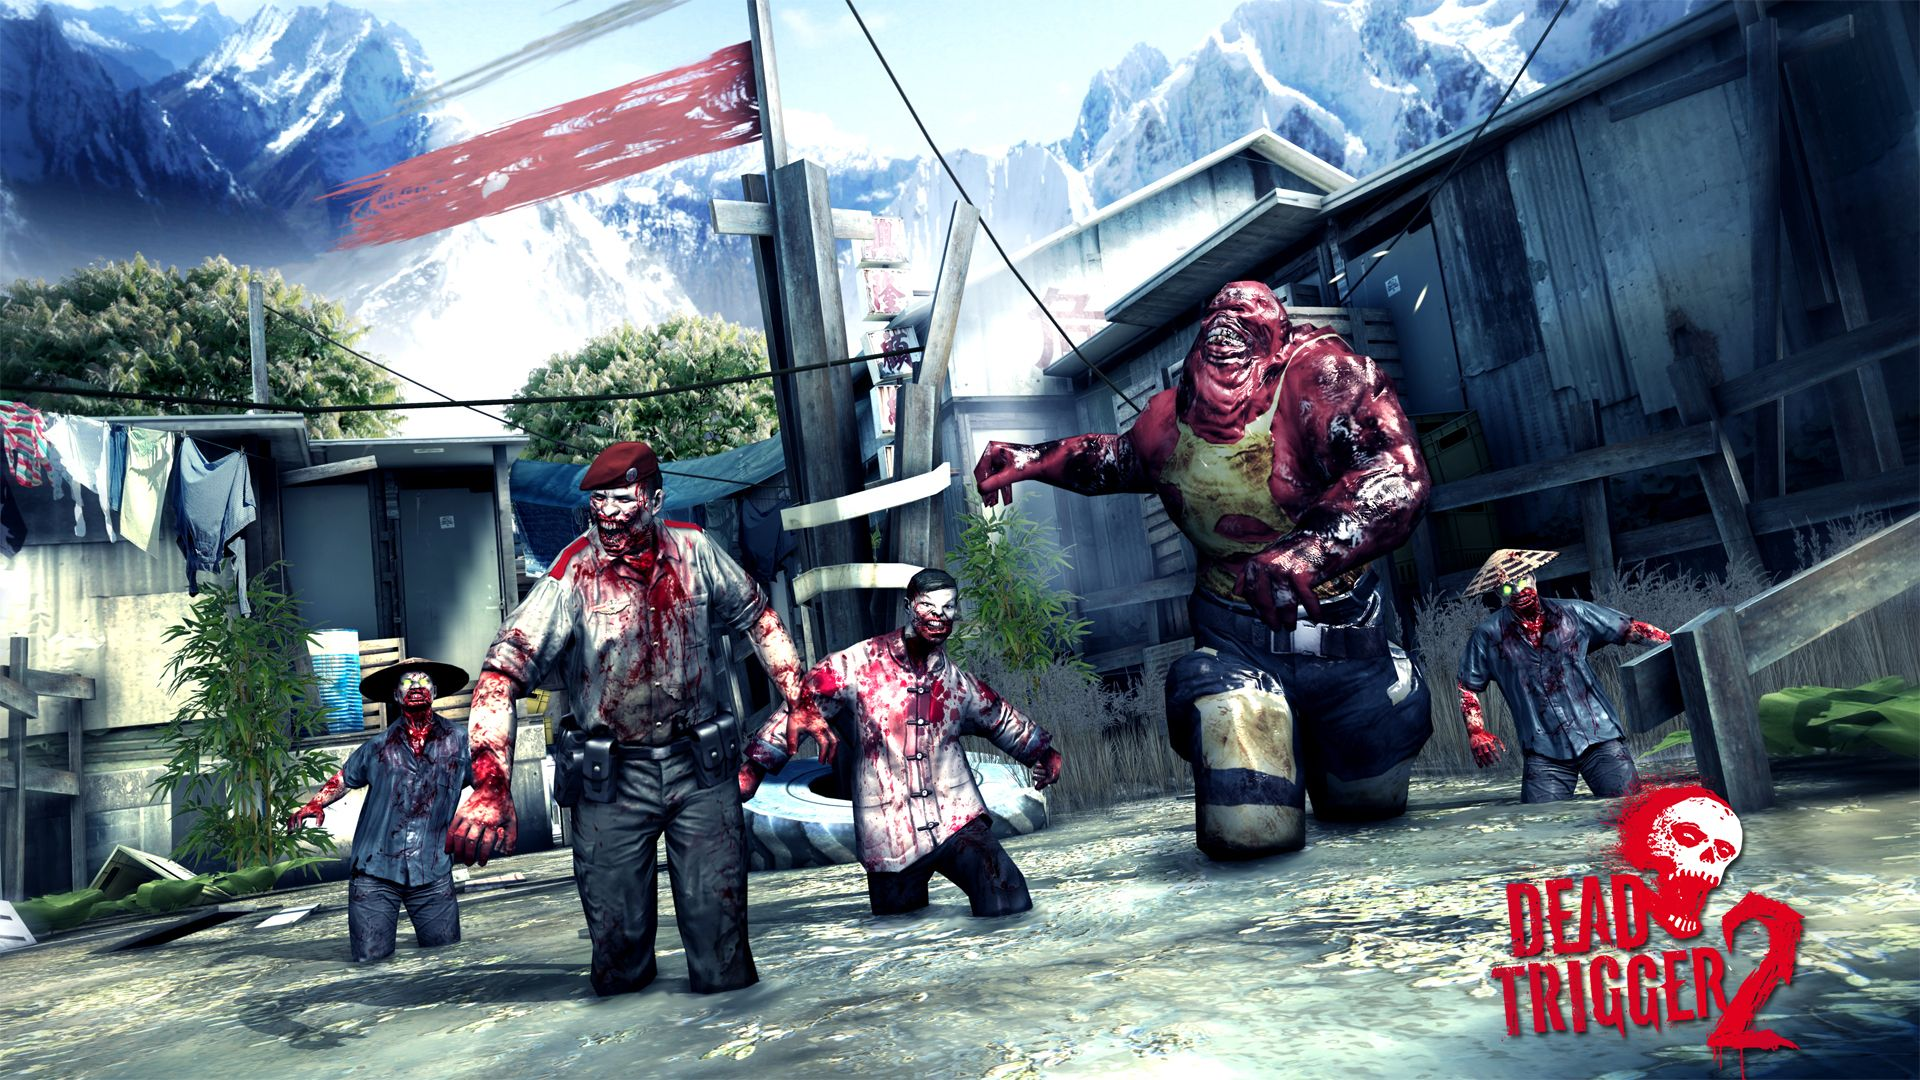 Dead Trigger 2 For Pc Free Download Http Gameshunters Com